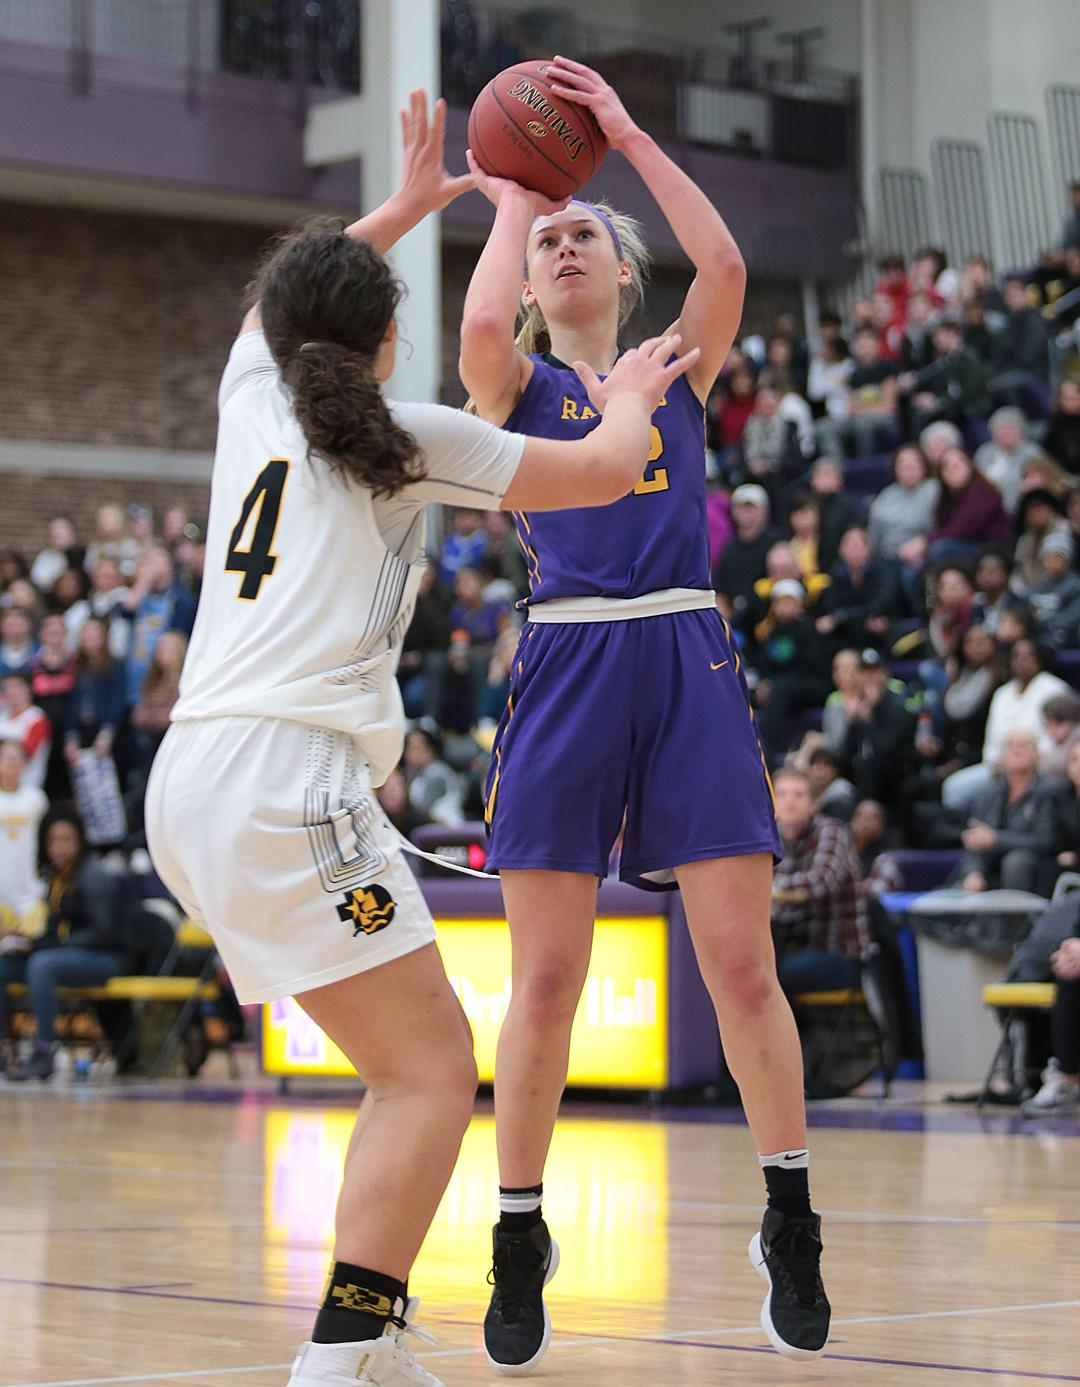 Junior forward Frannie Hottinger (22) goes over defender Olivia Travis (4) for another two points. Hottinger led Creitin-Derham Hall to a 62-50 victory with a game high 20 points. Photo by Cheryl Myers, SportsEngine